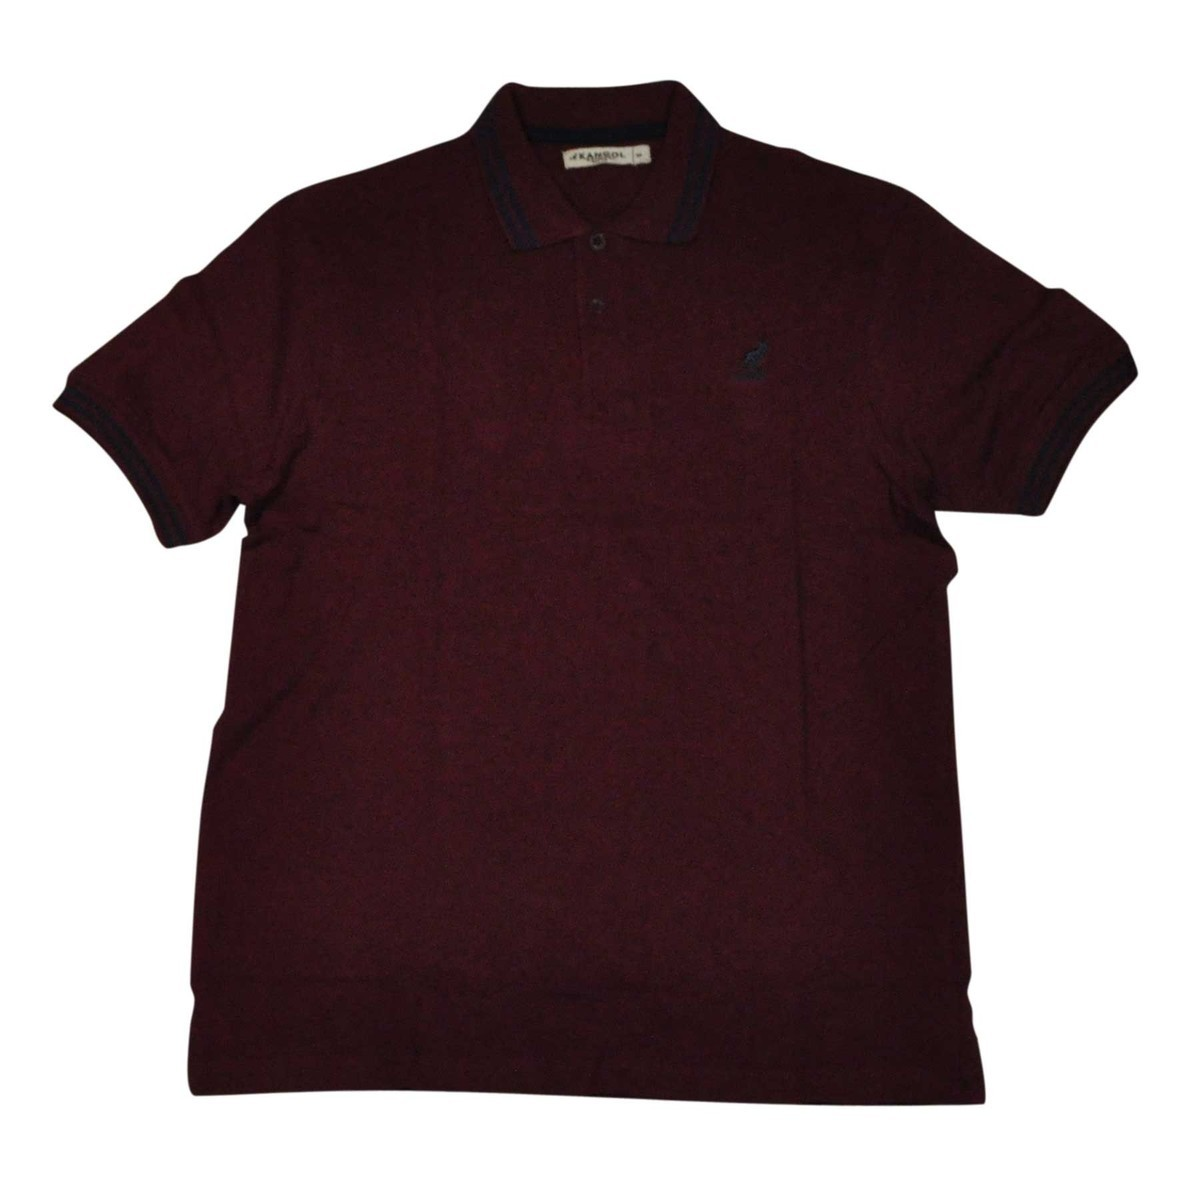 Kangol カンゴール Joshua Polo Shirt MAHOGANY Polo Shirt 帽子 MAHOGANY